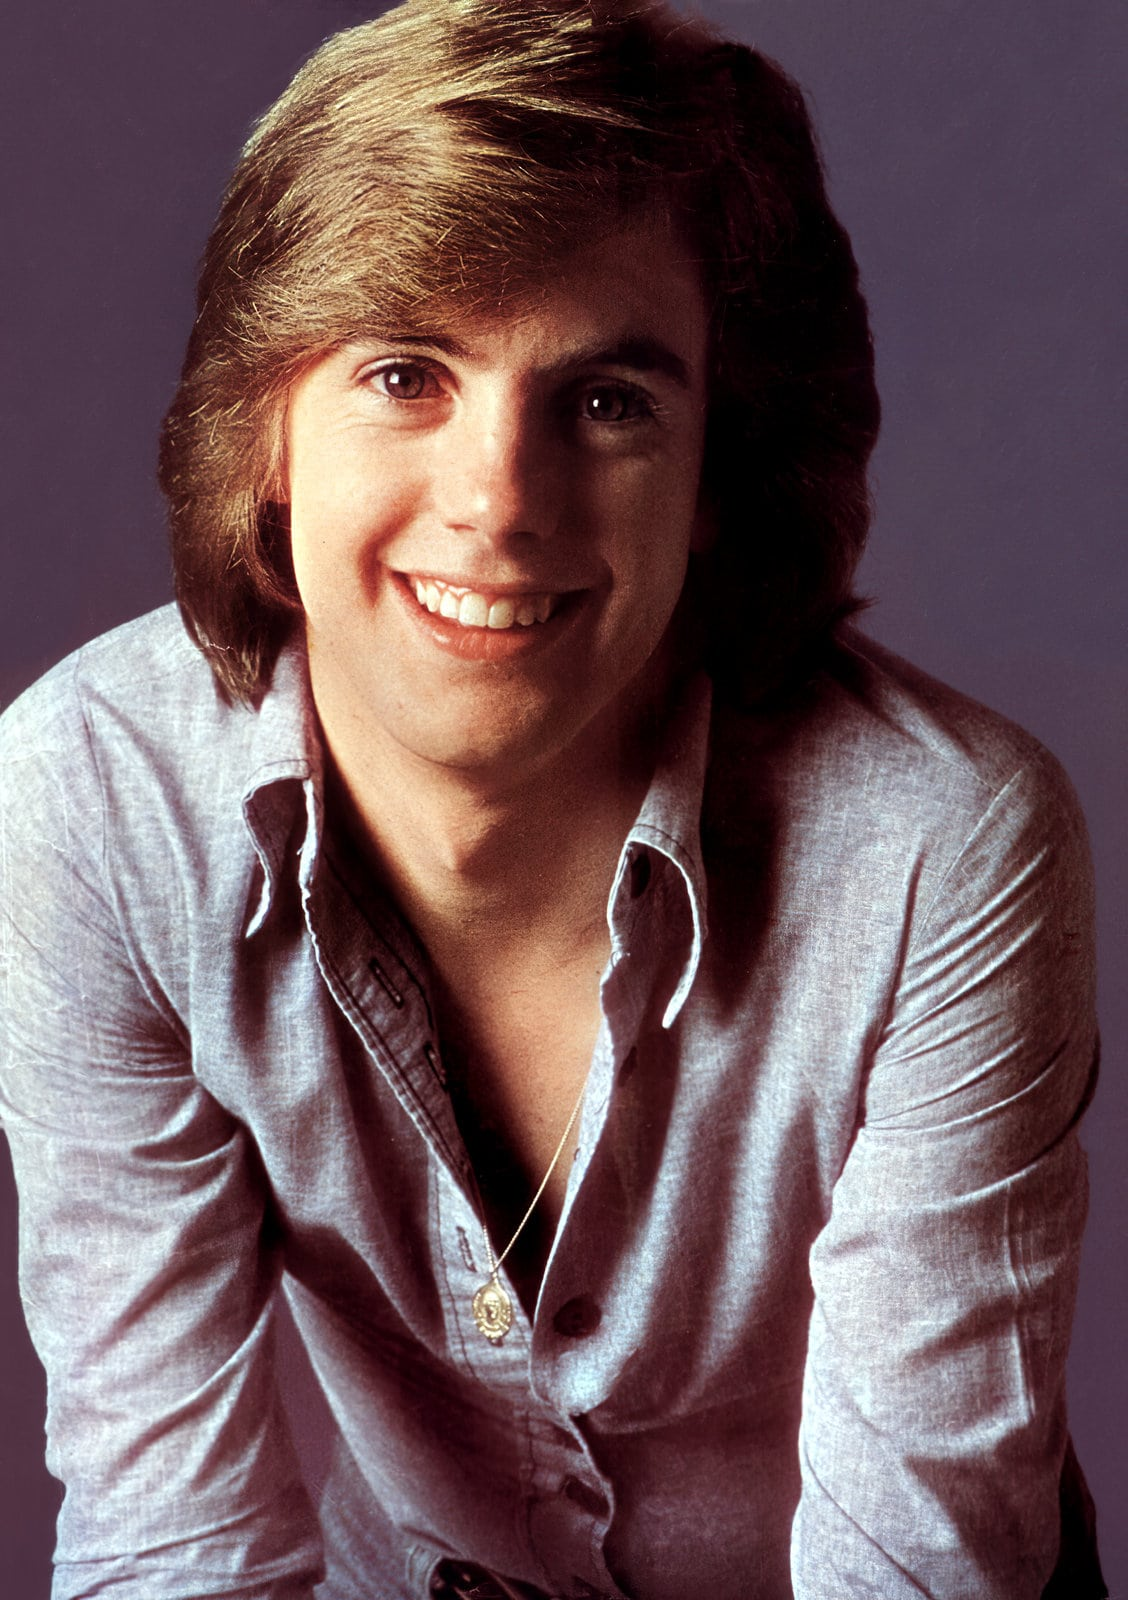 Young Shaun Cassidy - actor and singer